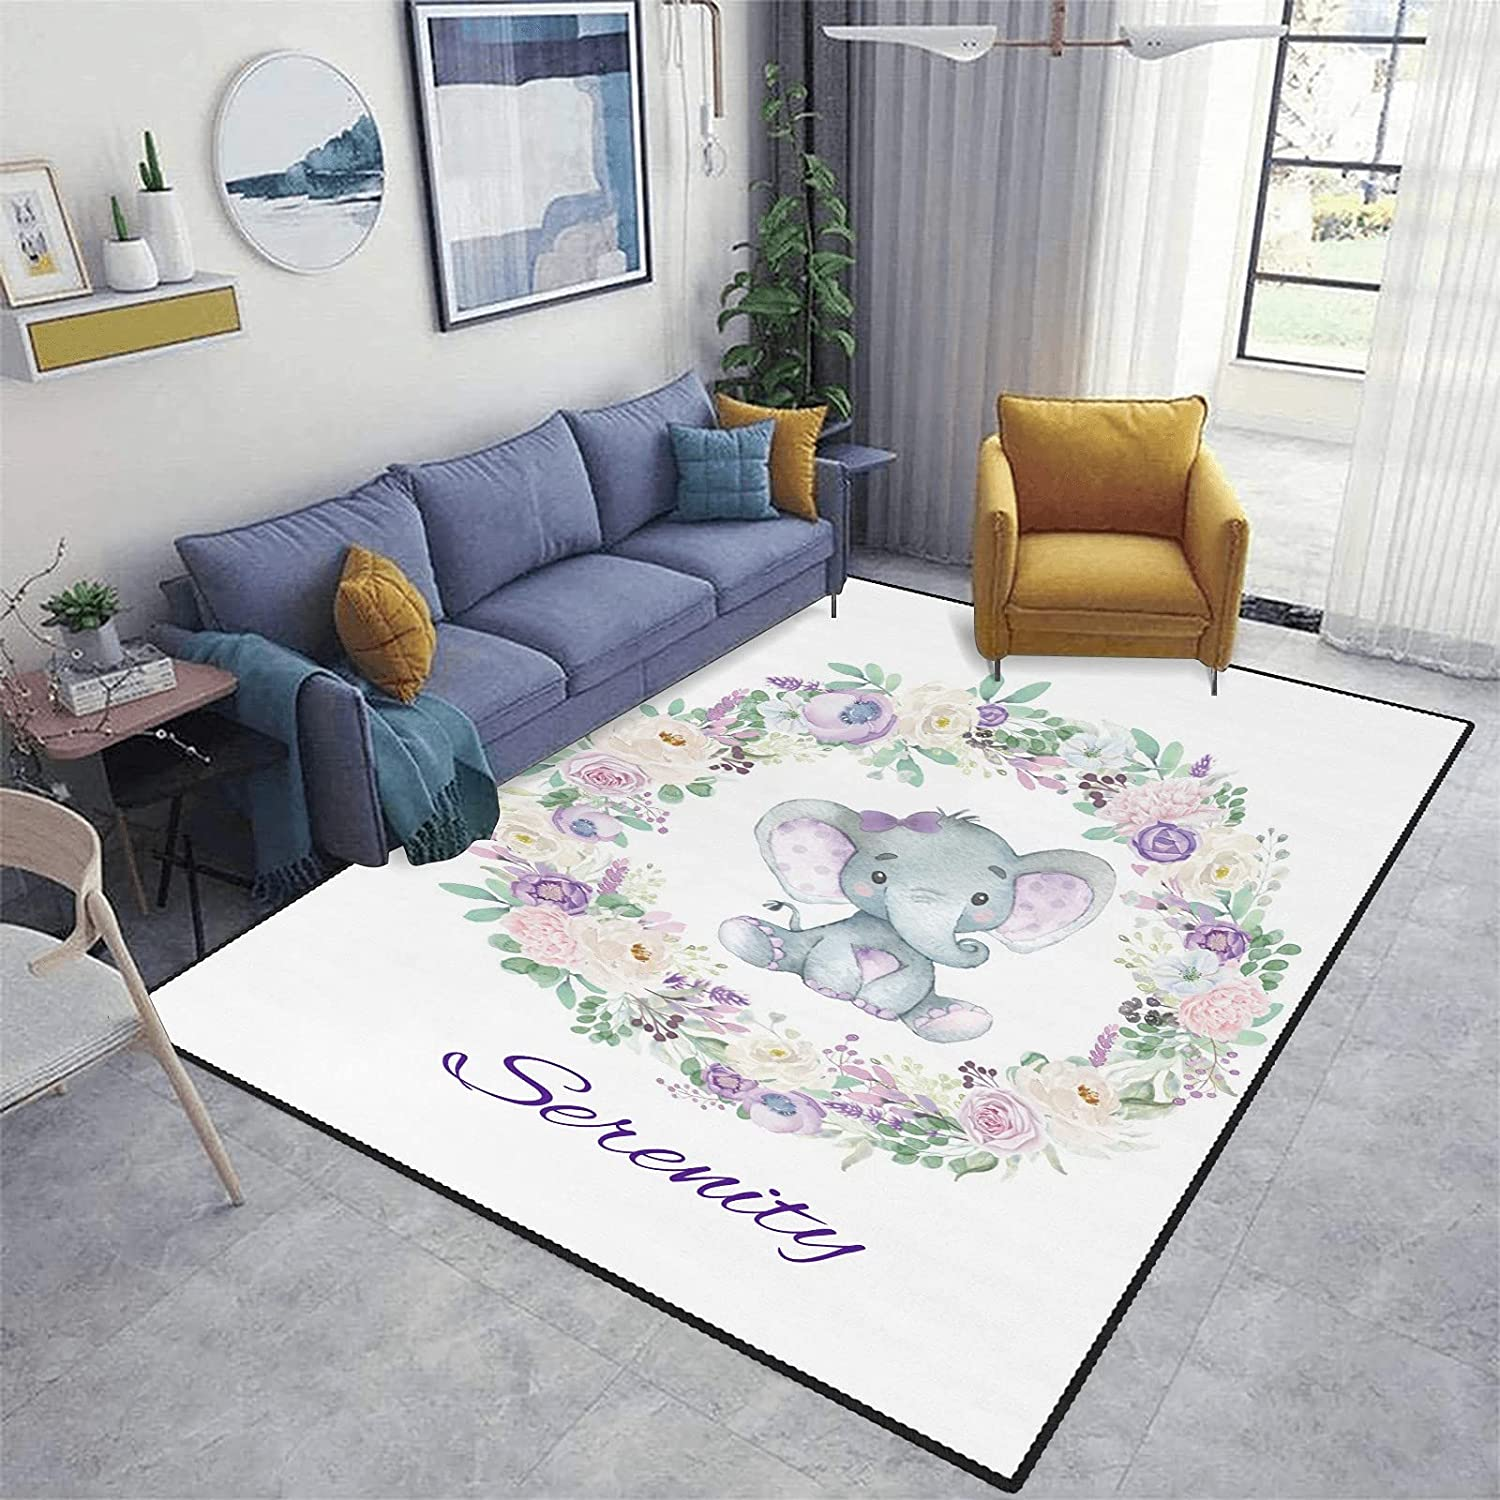 Personalized Dealing full price reduction Garland famous Elephant Flowers Area Mat Rugs Kitchen Bath